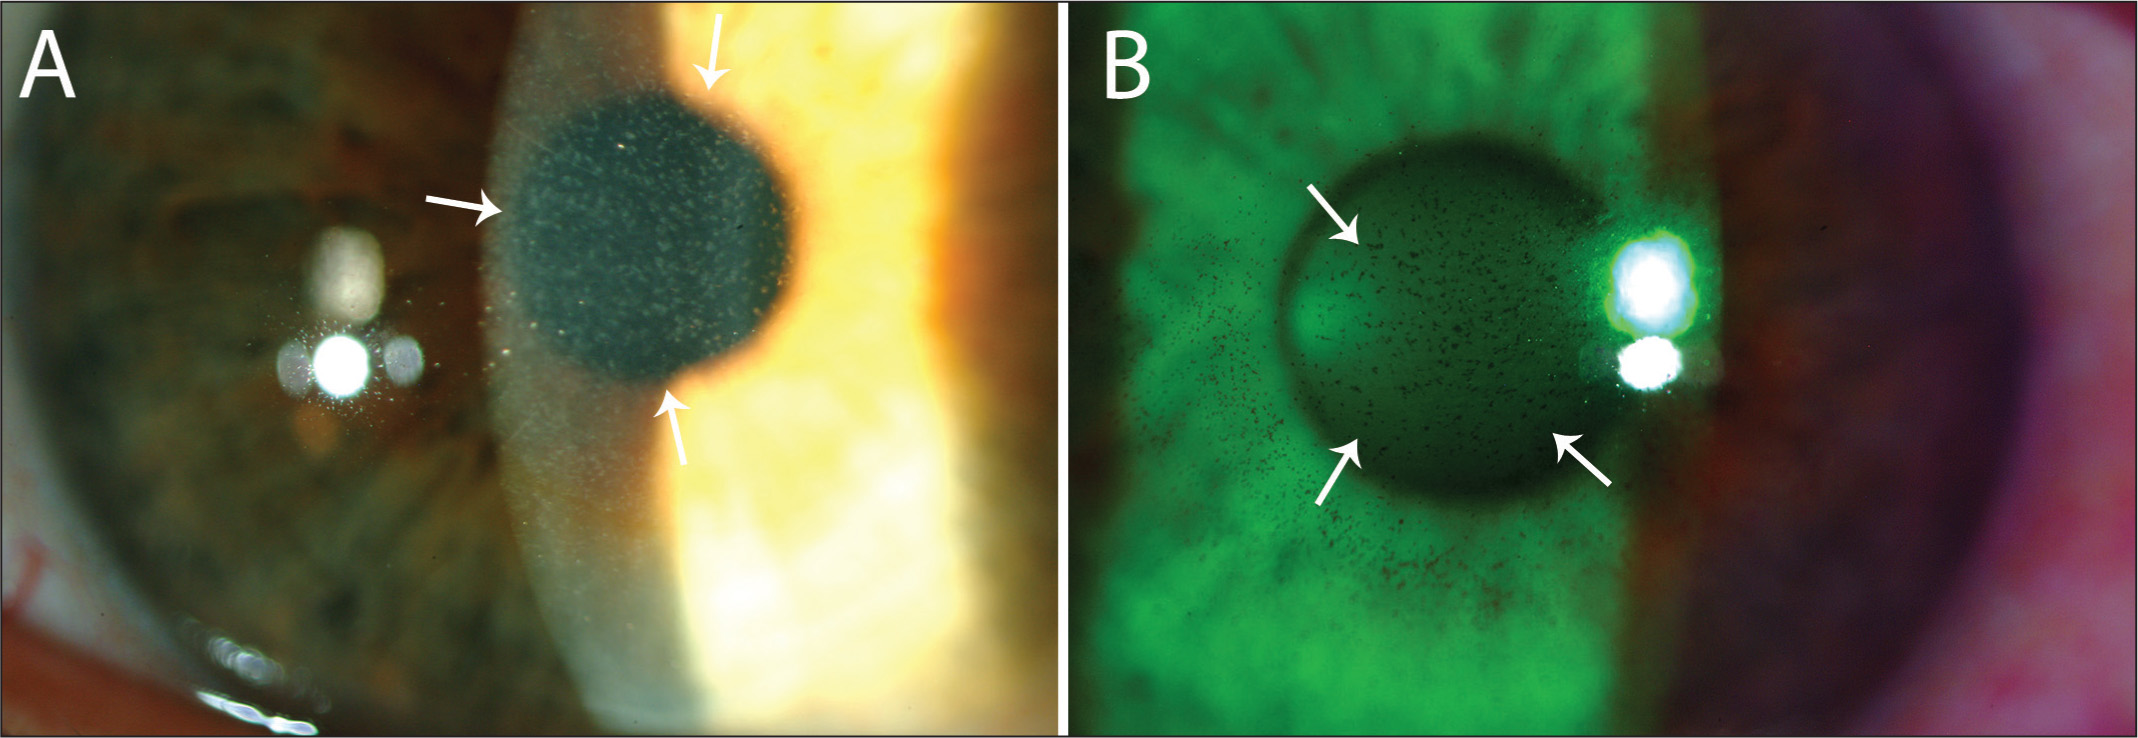 Slit-lamp photographs of corneas with punctate epithelial erosions present at the refractive surgery screening examination (original magnification ×40). (A) A cornea with 2+ punctate epithelial erosions (arrows) seen in the slit beam on the anterior cornea surface. (B) Cornea with 2+ lissamine green staining (arrows) before surgery.